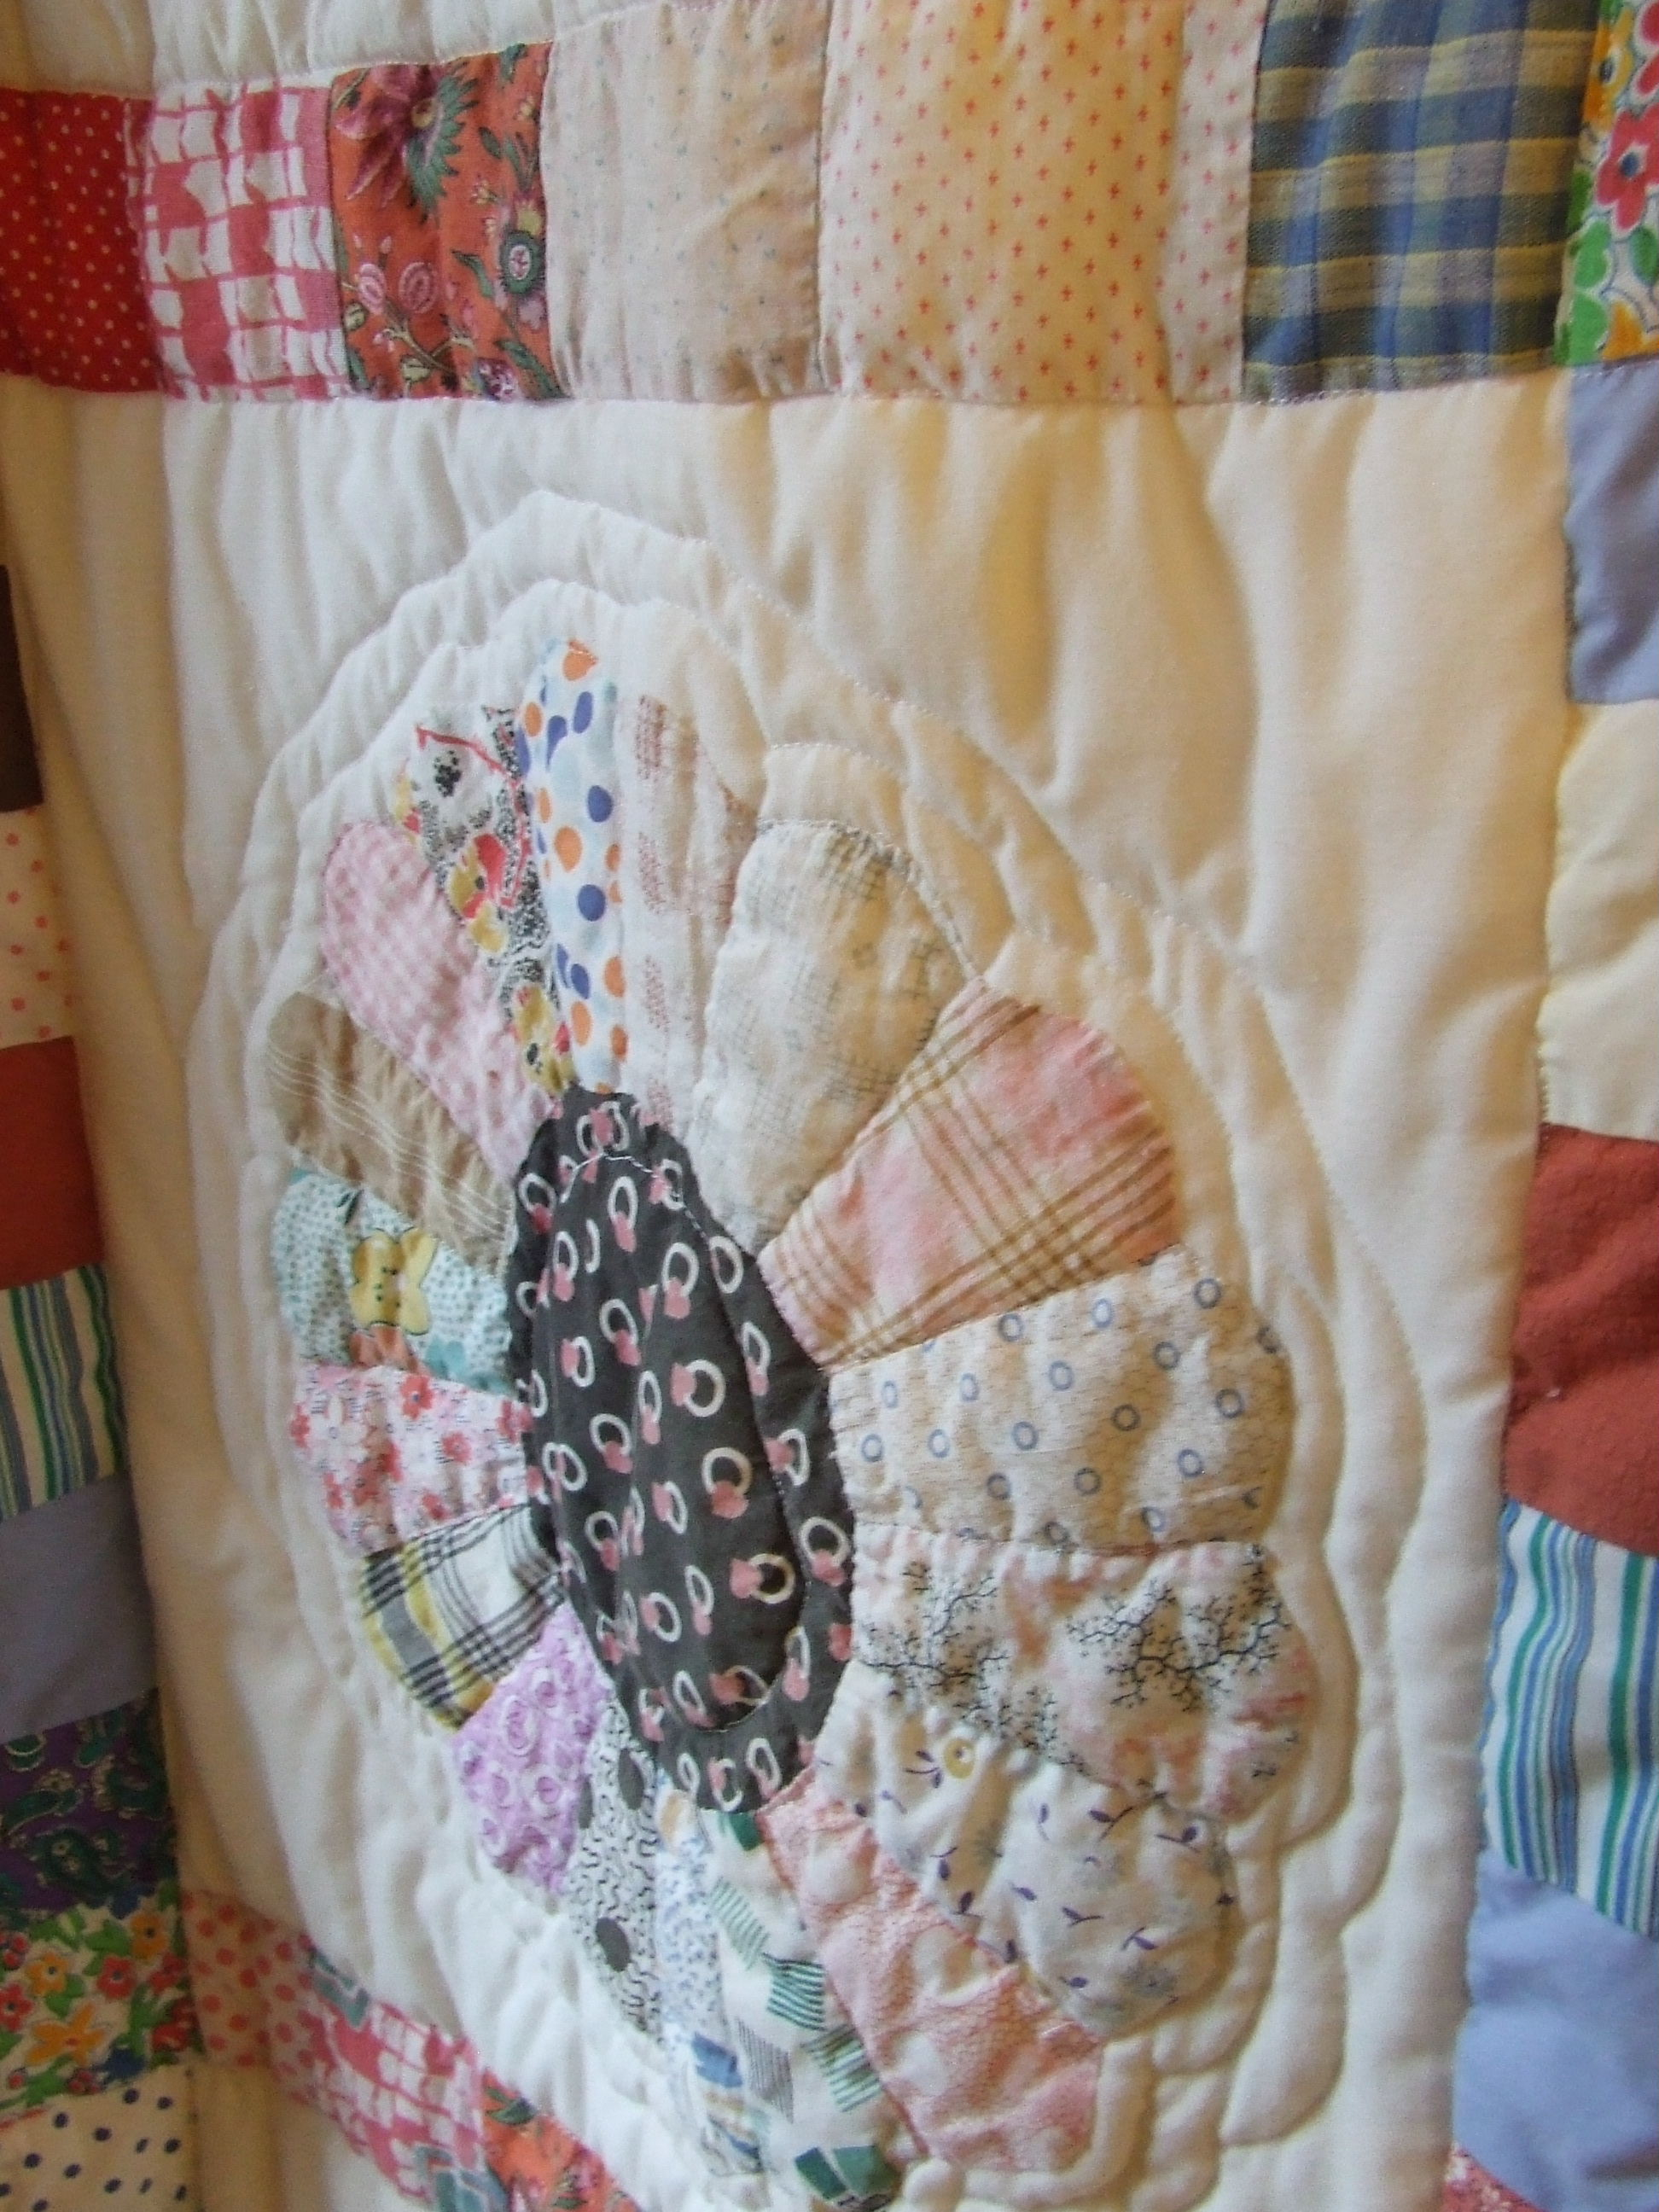 Shower curtain quilt pattern - The